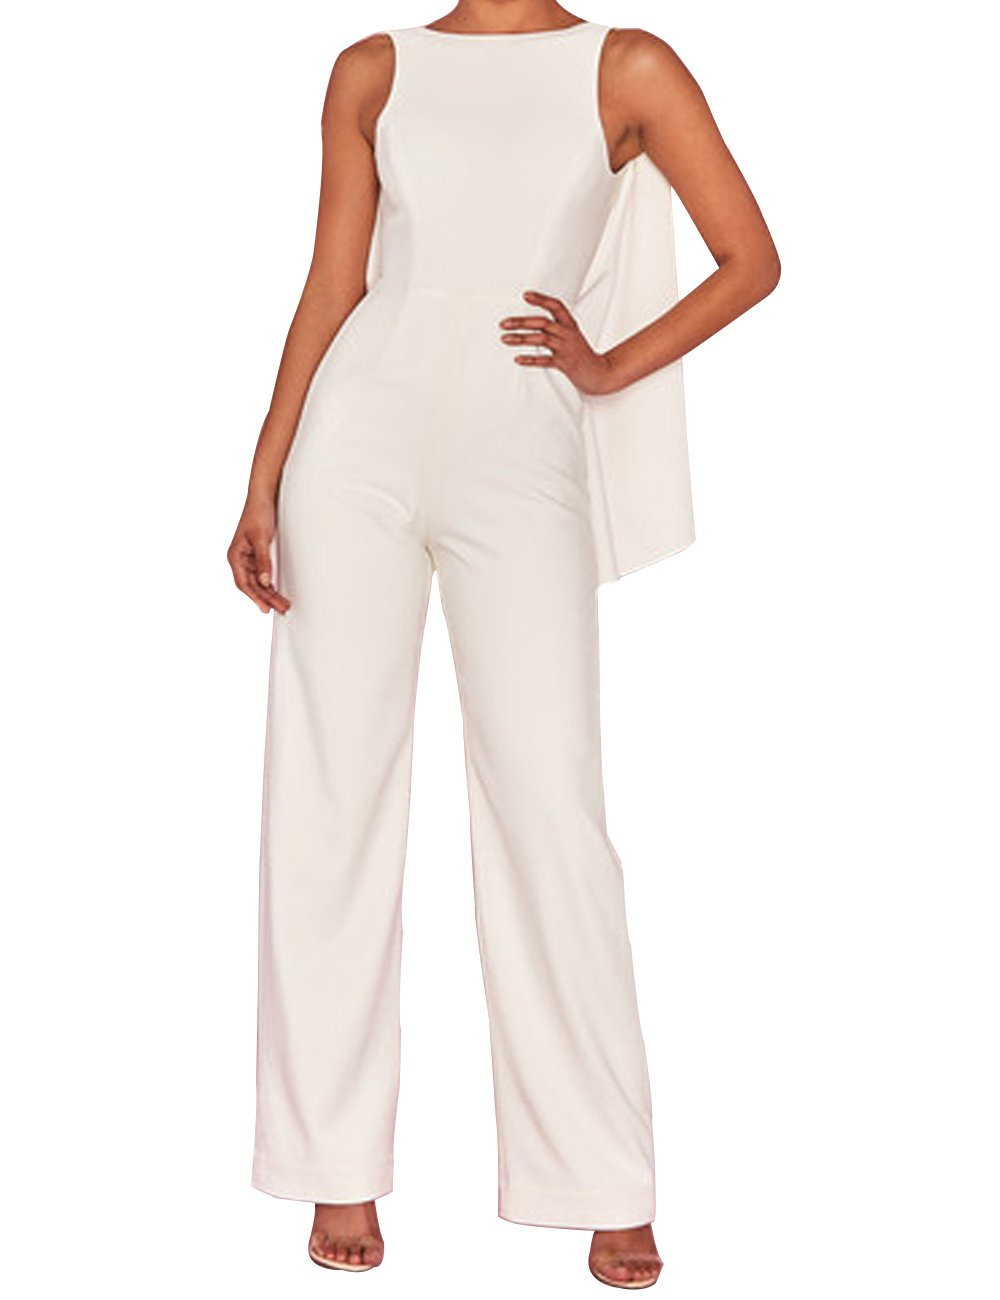 UONBOX Women's Elegant Open Back Sleeveless Wide Leg Long Pants Draped Jumpsuit Rompers (White, L)